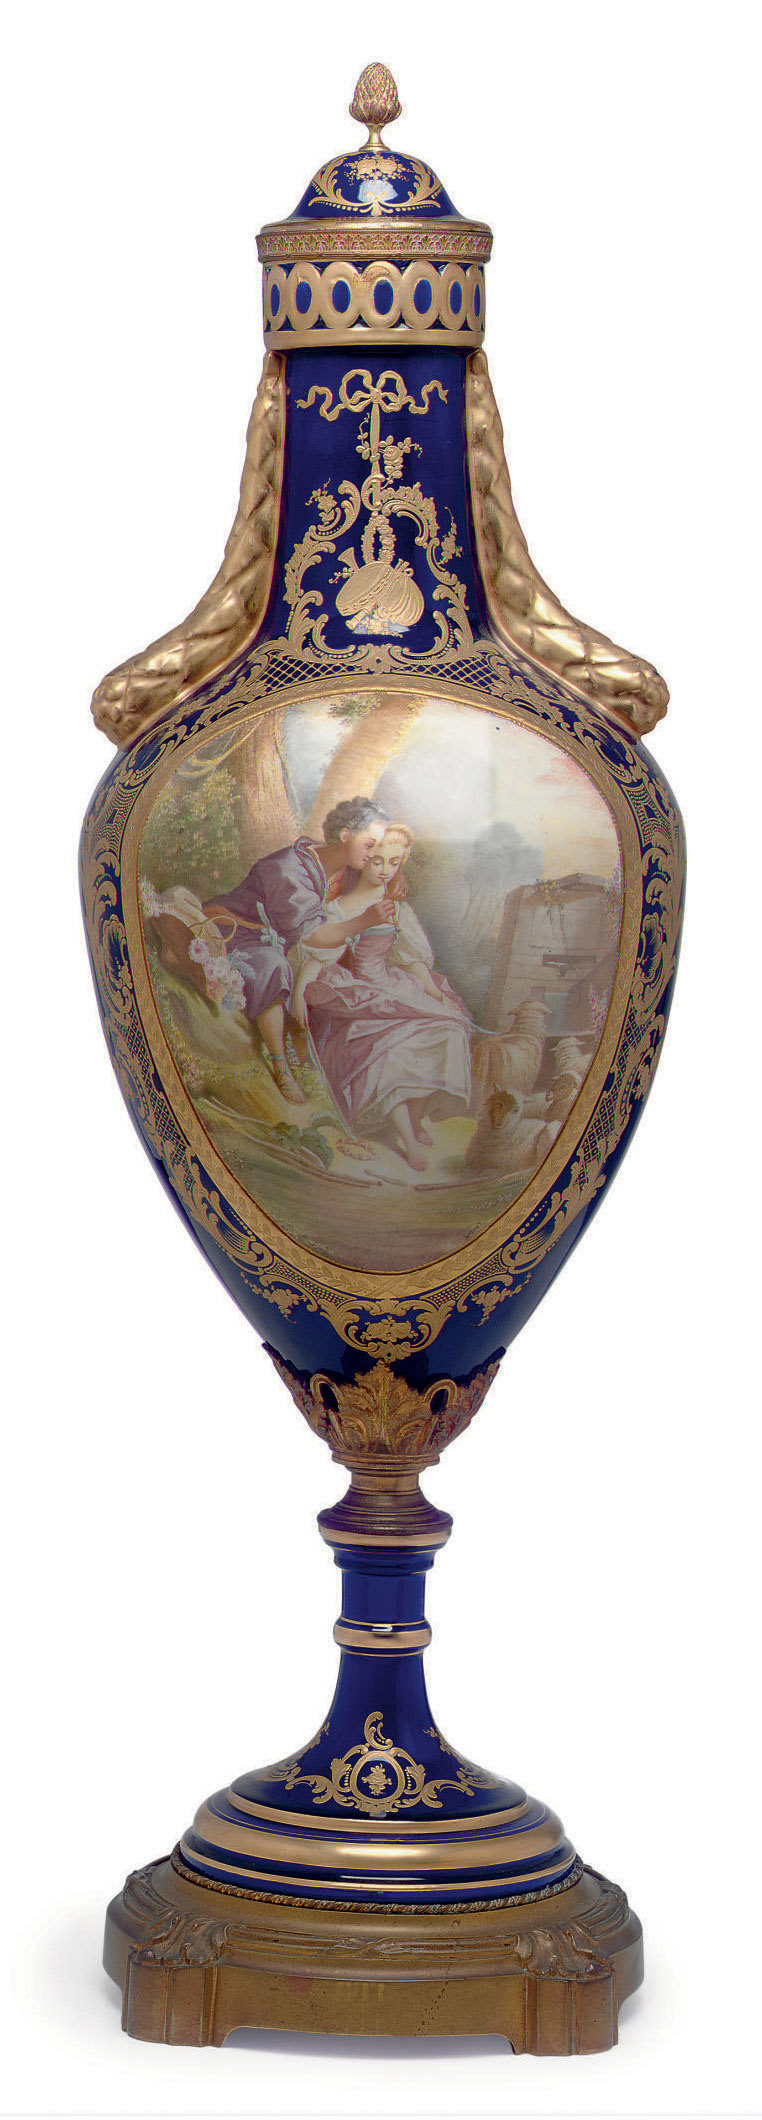 A LARGE ORMOLU-MOUNTED SEVRES STYLE PORCELAIN COBALT-BLUE GROUND VASE AND COVER